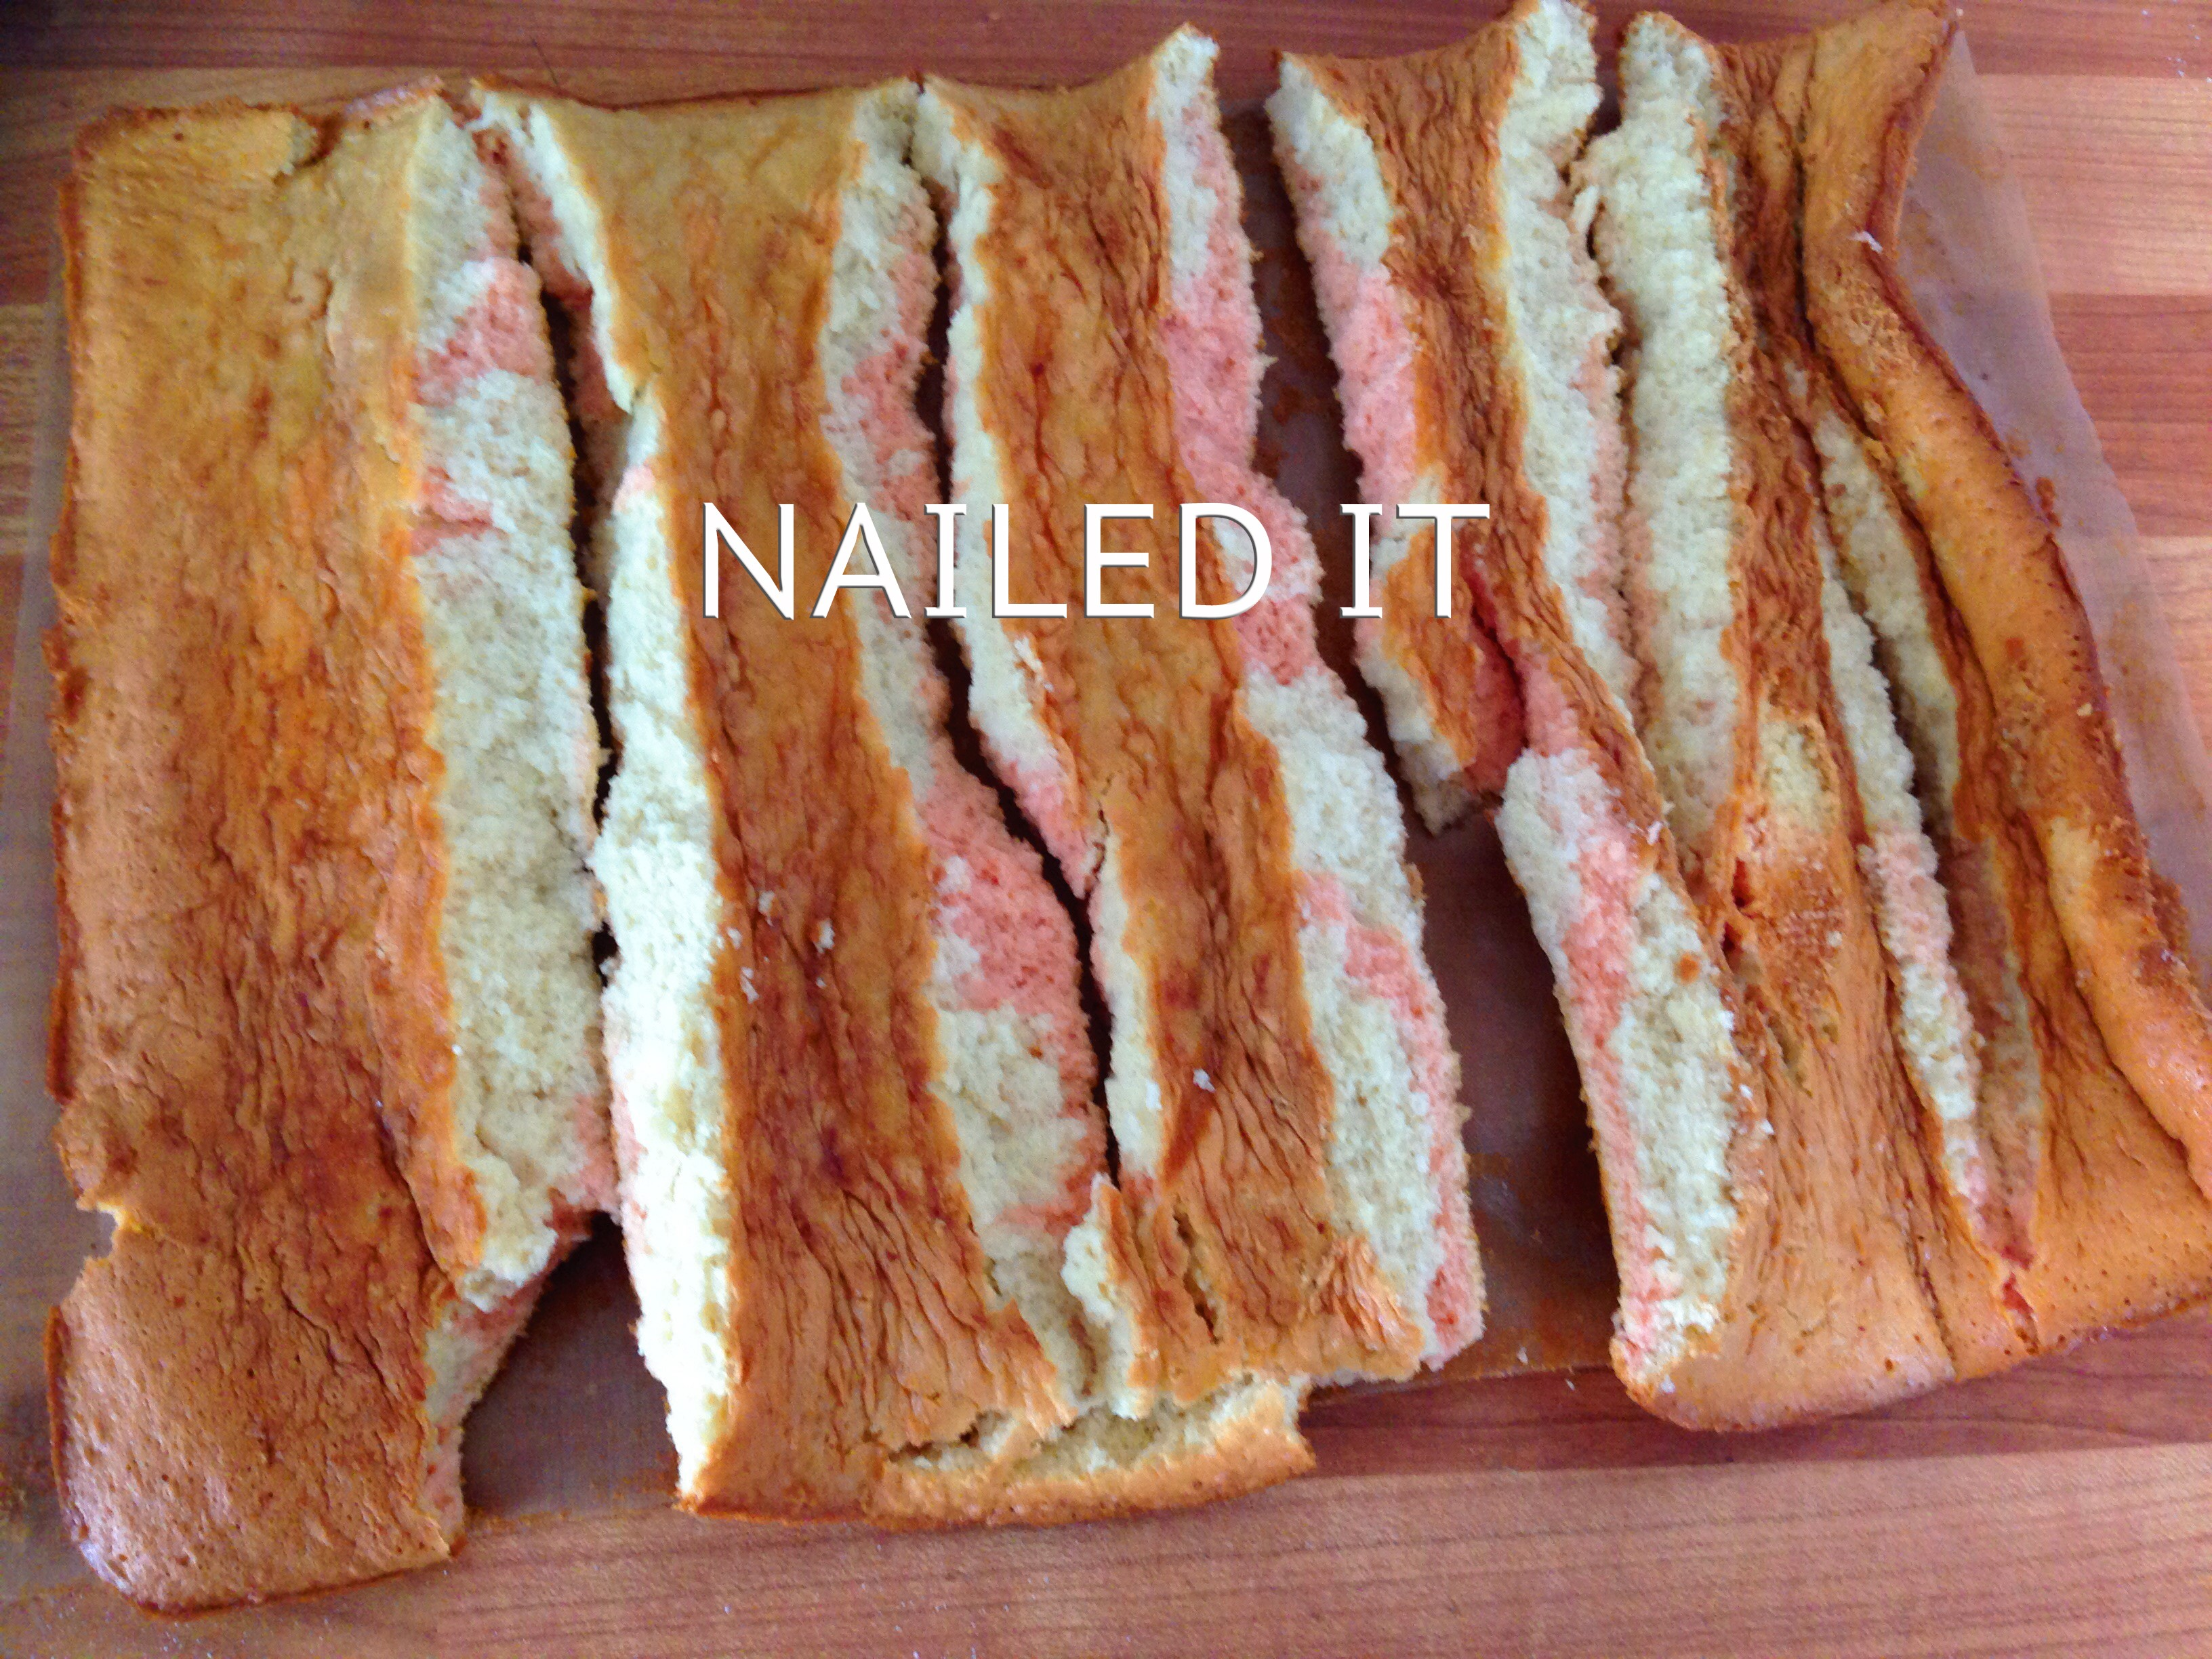 Baking Bad: What to do with your Great British Bake Off Swiss roll baking disasters